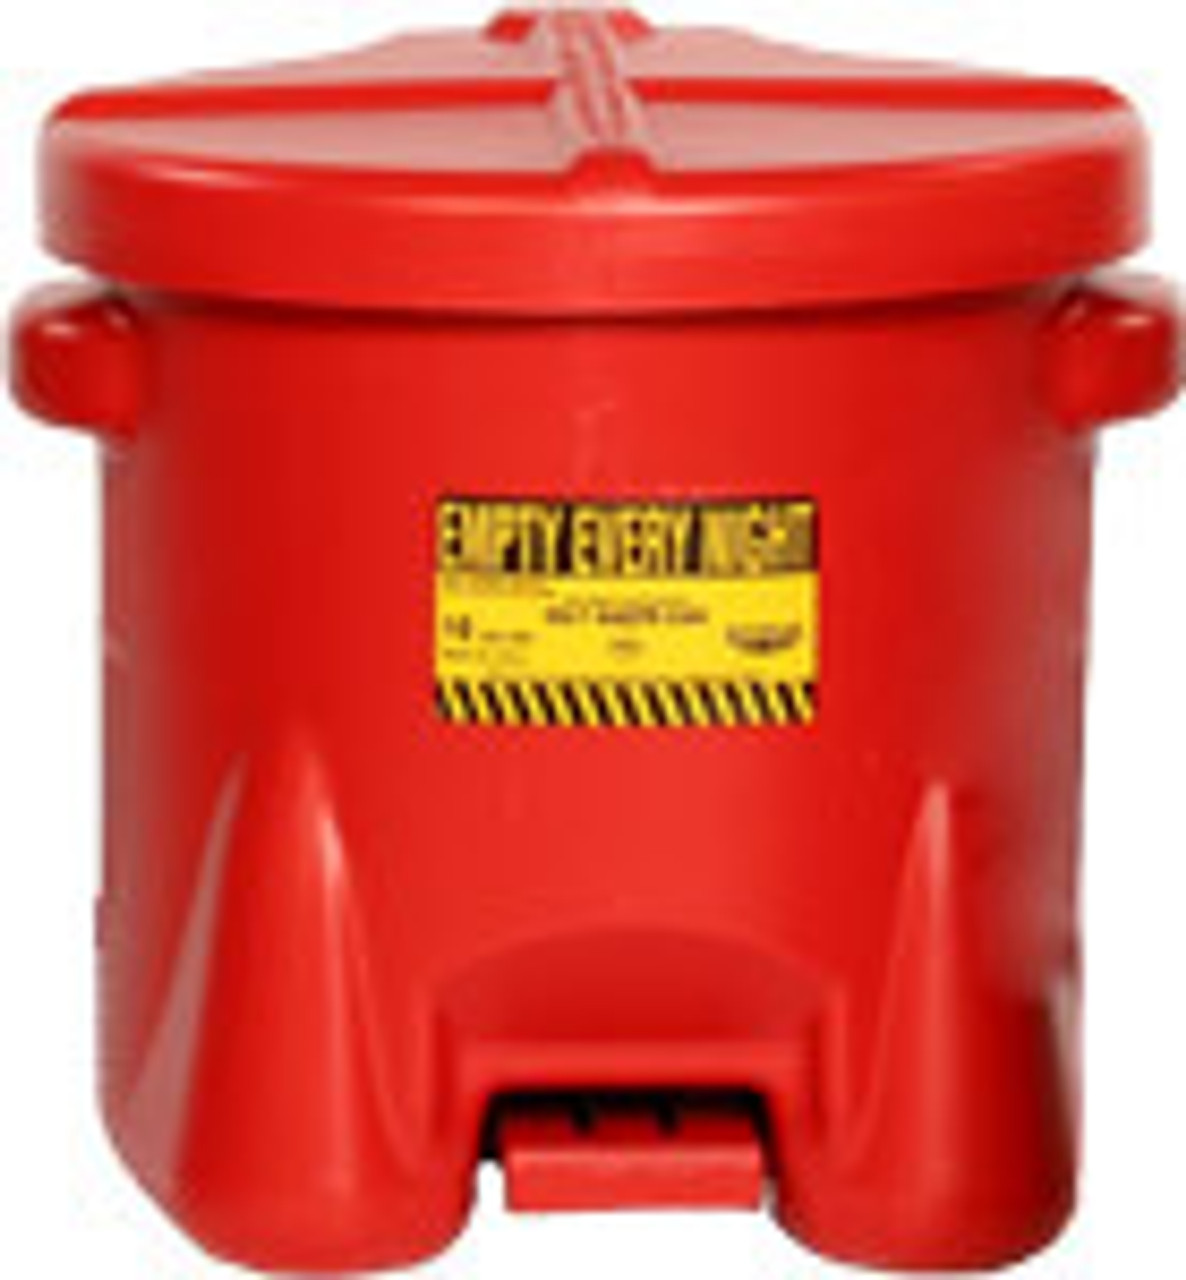 Eagle Waste Cans and Containers